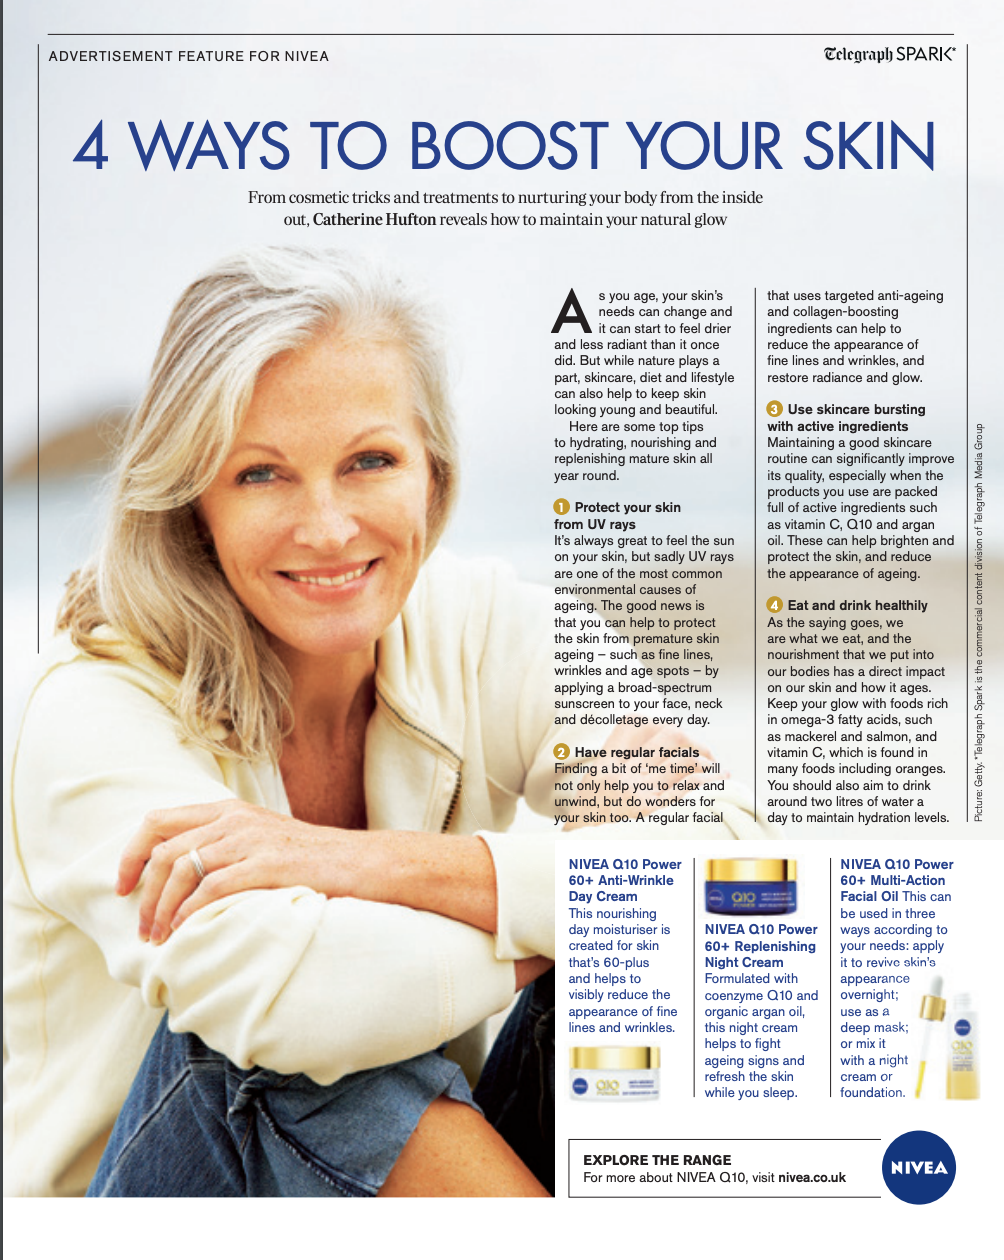 4 Ways To Boost Your Skin